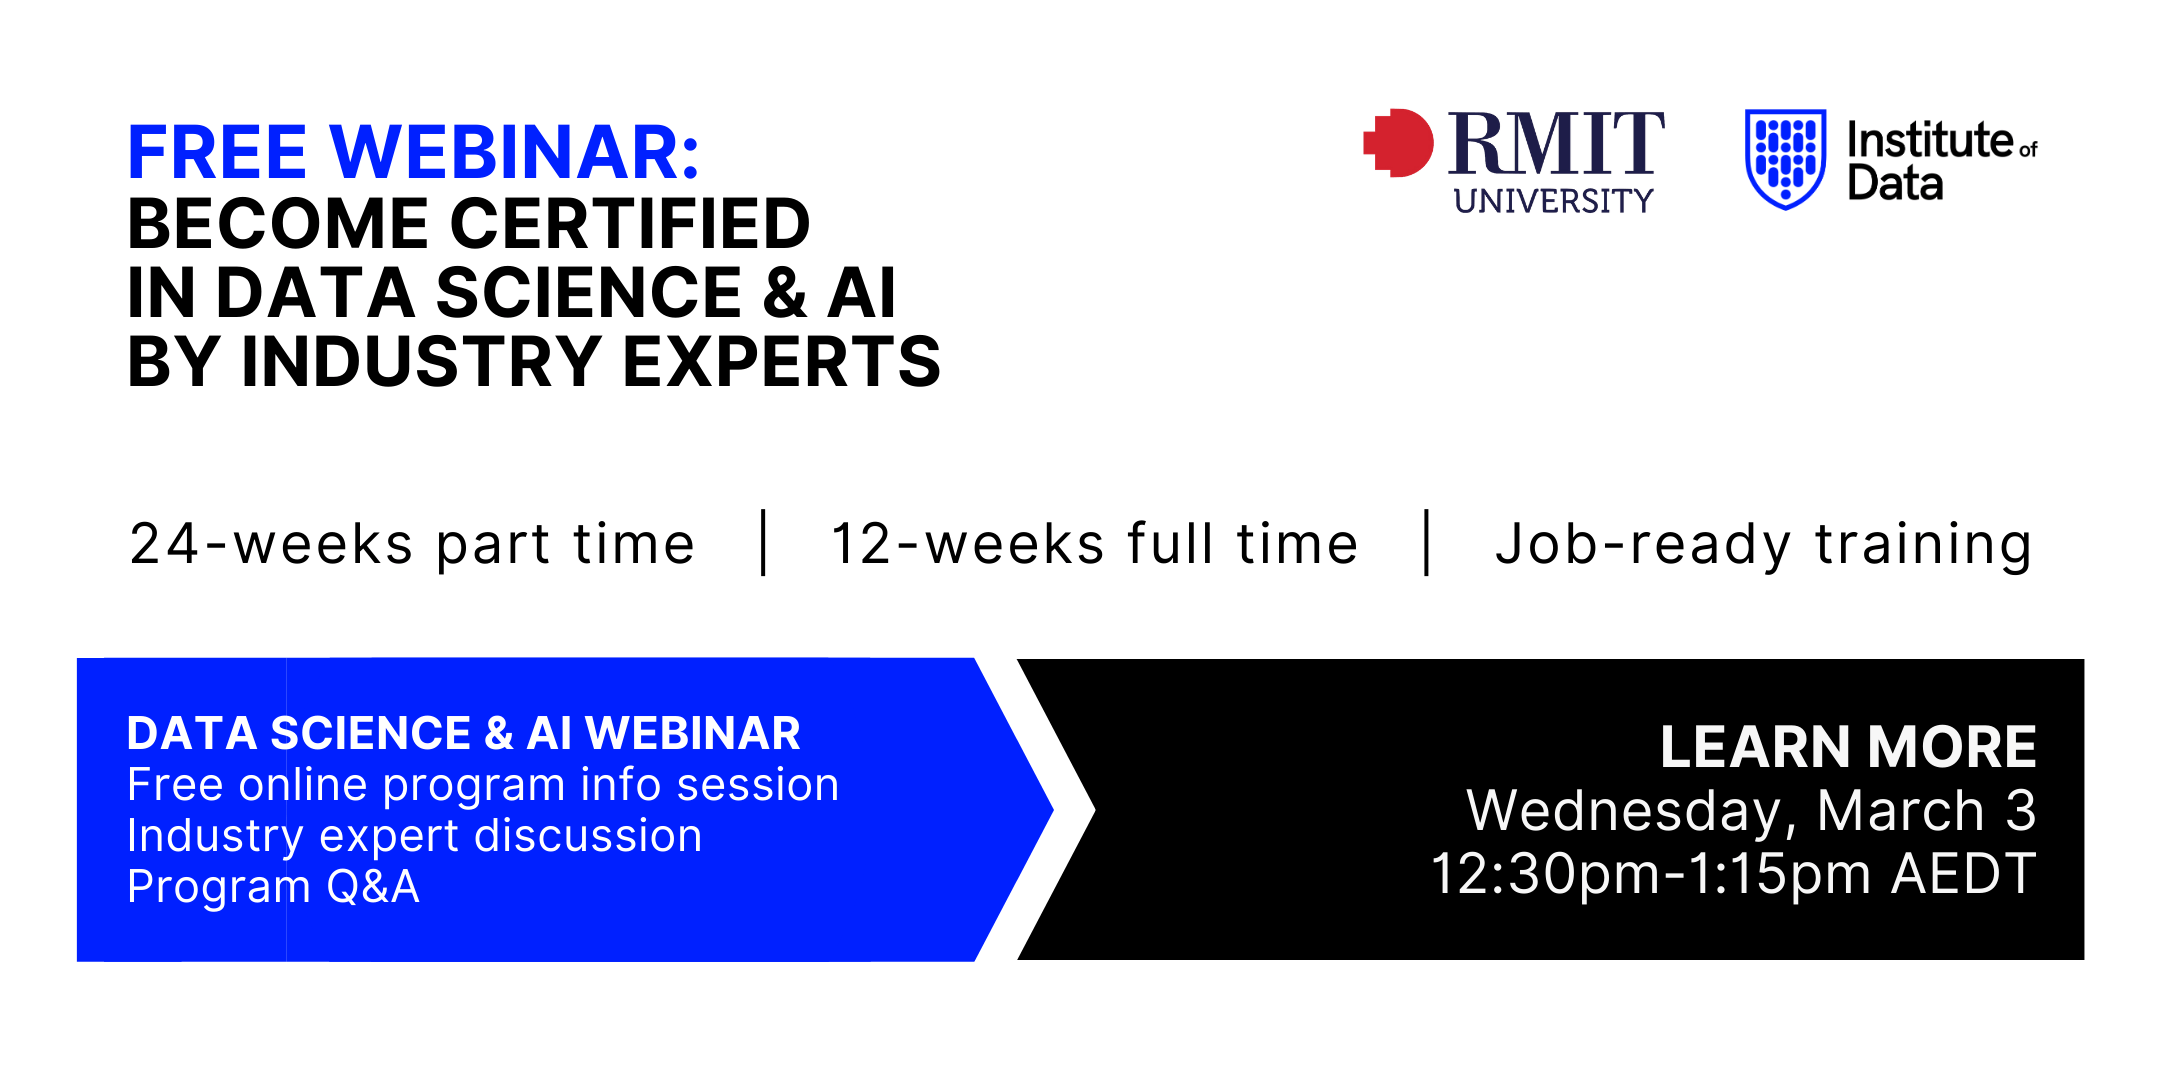 Institute of Data RMIT - Data Science and AI Program - Online Info Session - March 3 2021